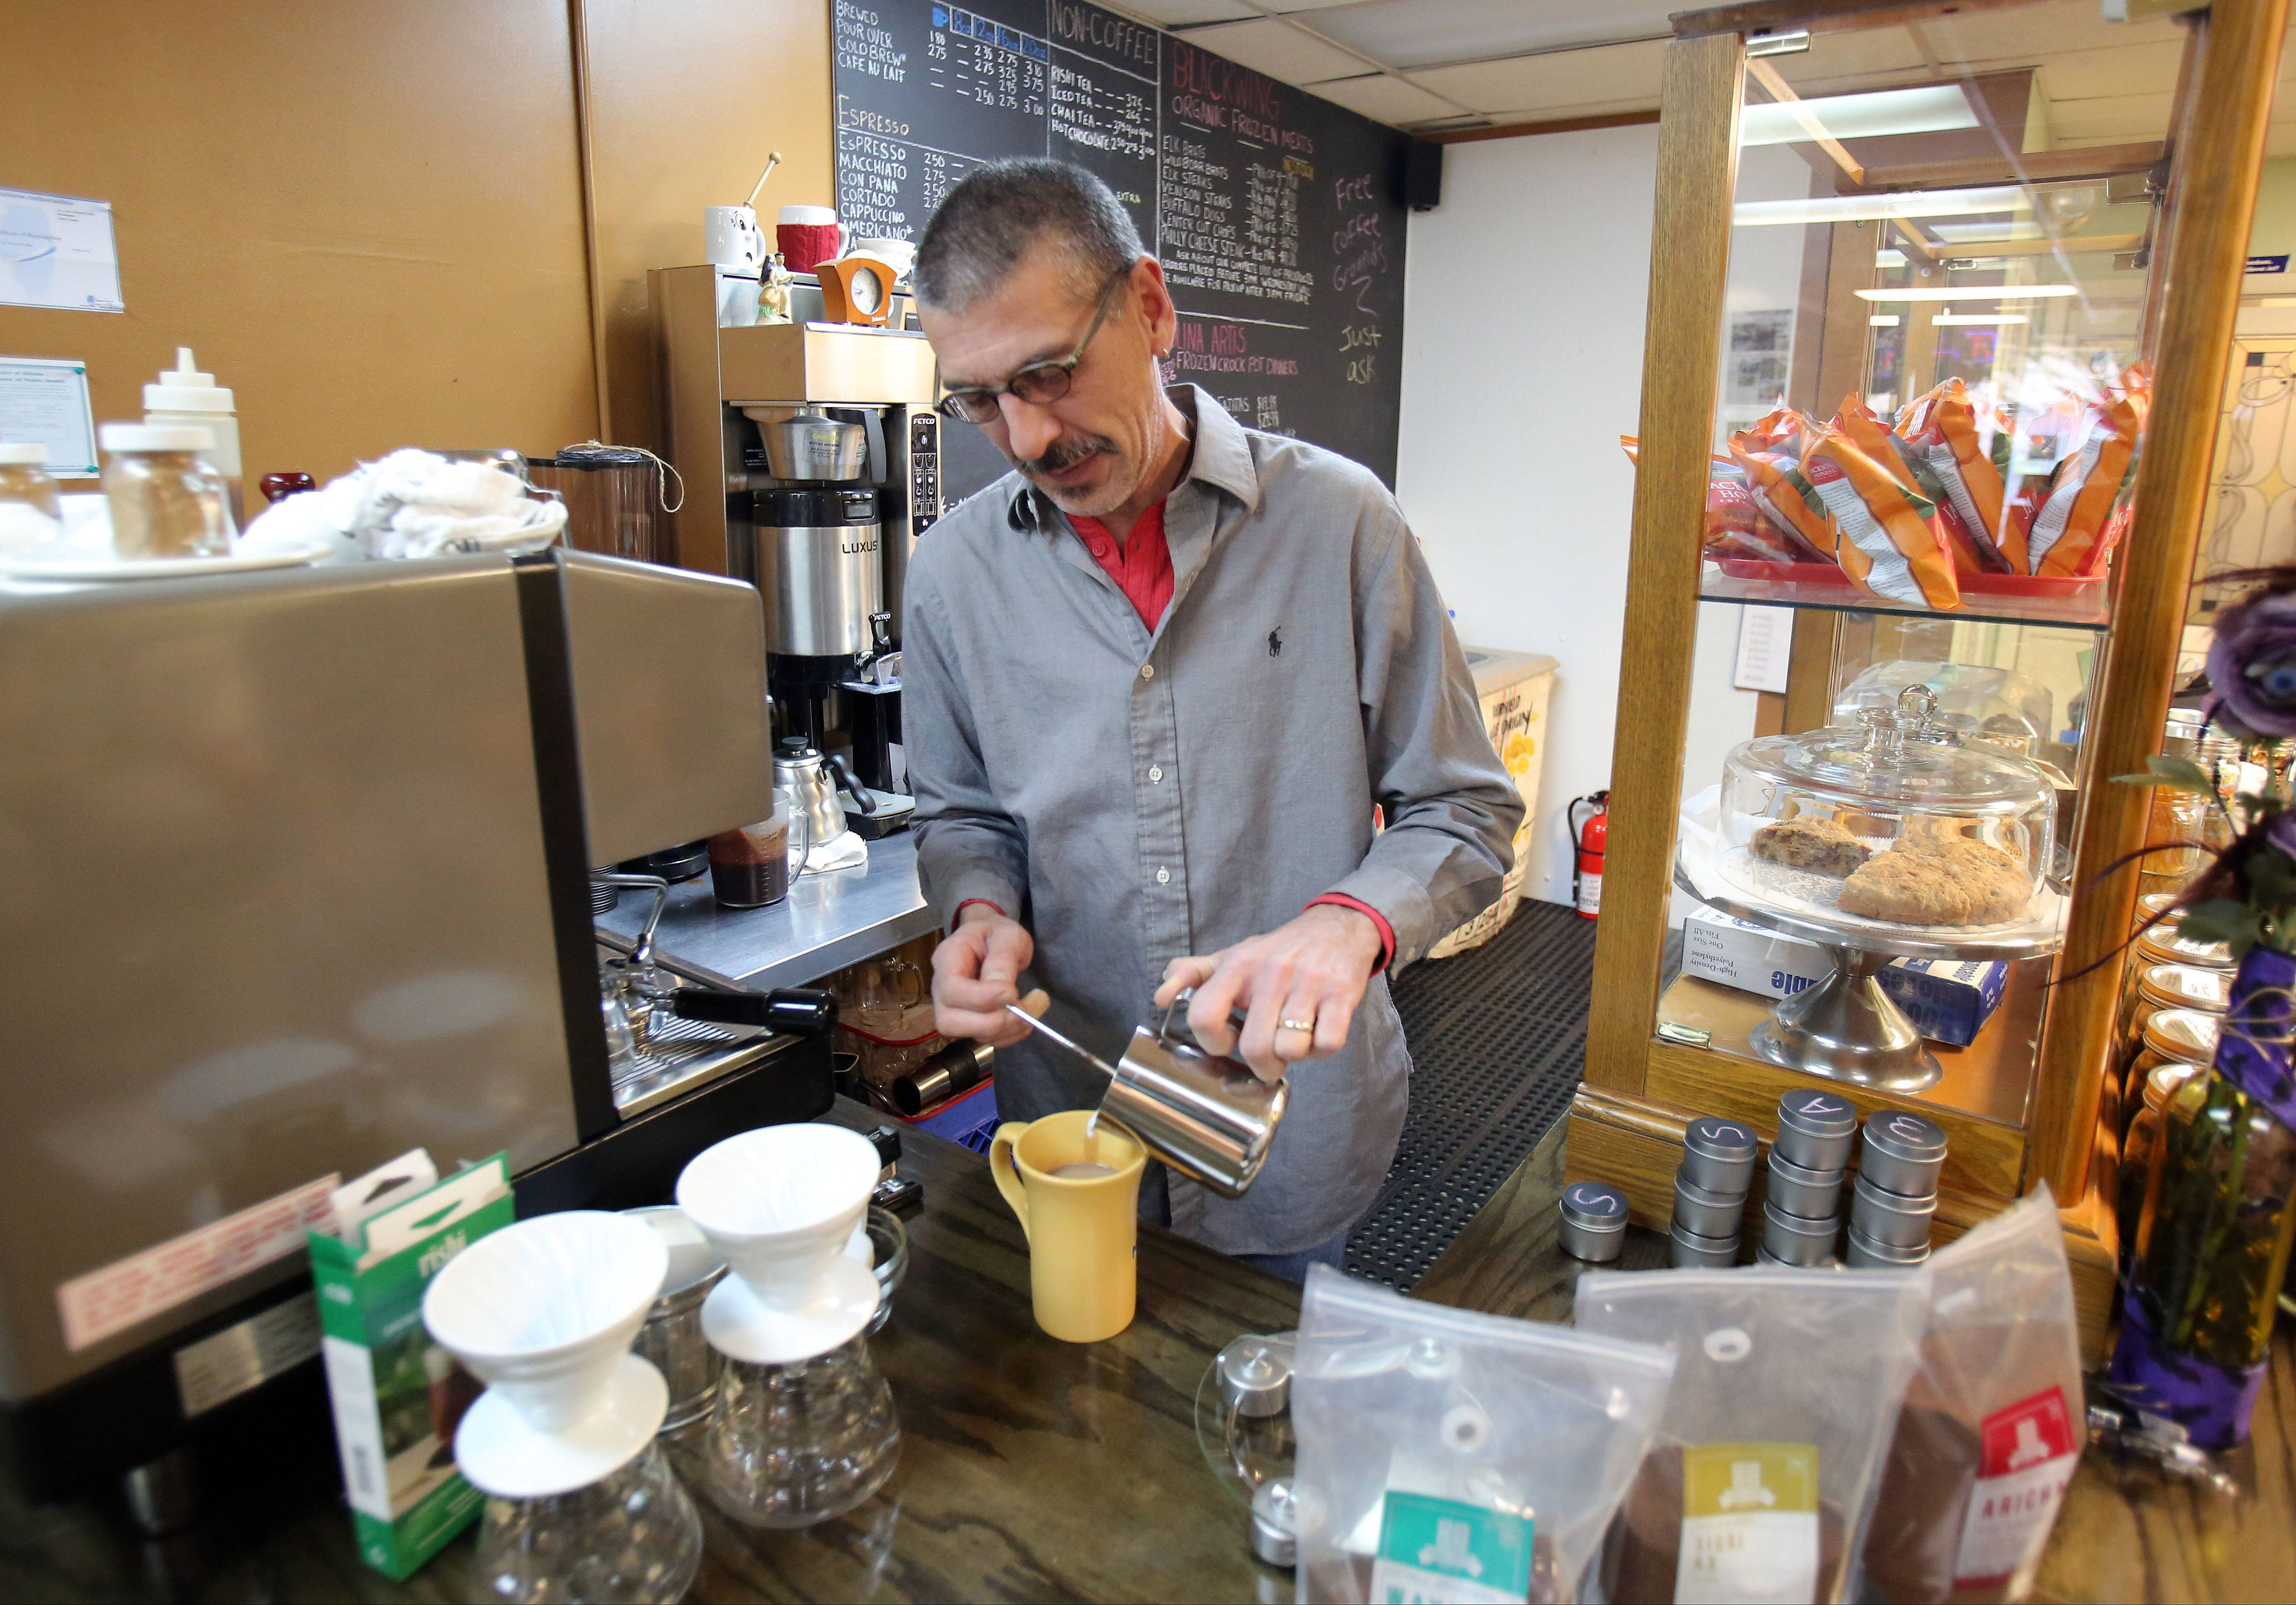 Mundelein's Area General Store a place for coffee, conversation